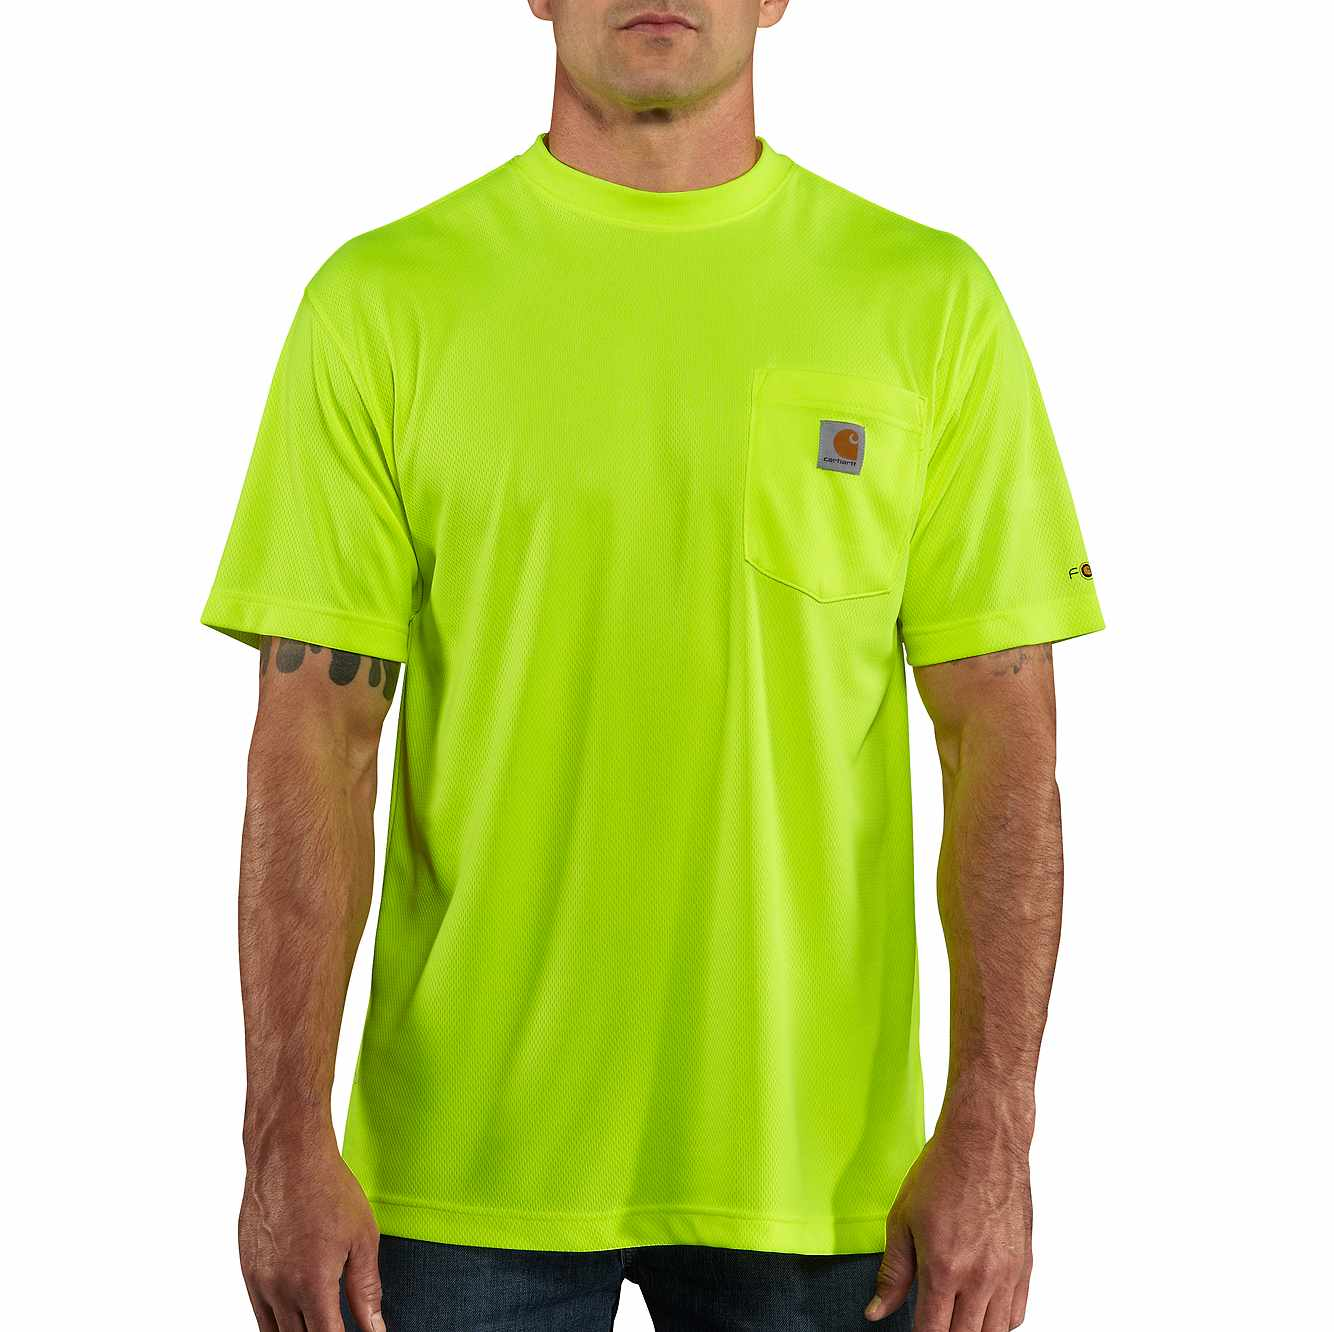 Picture of Carhartt Force® Color Enhanced Short-Sleeve T-Shirt in Brite Lime